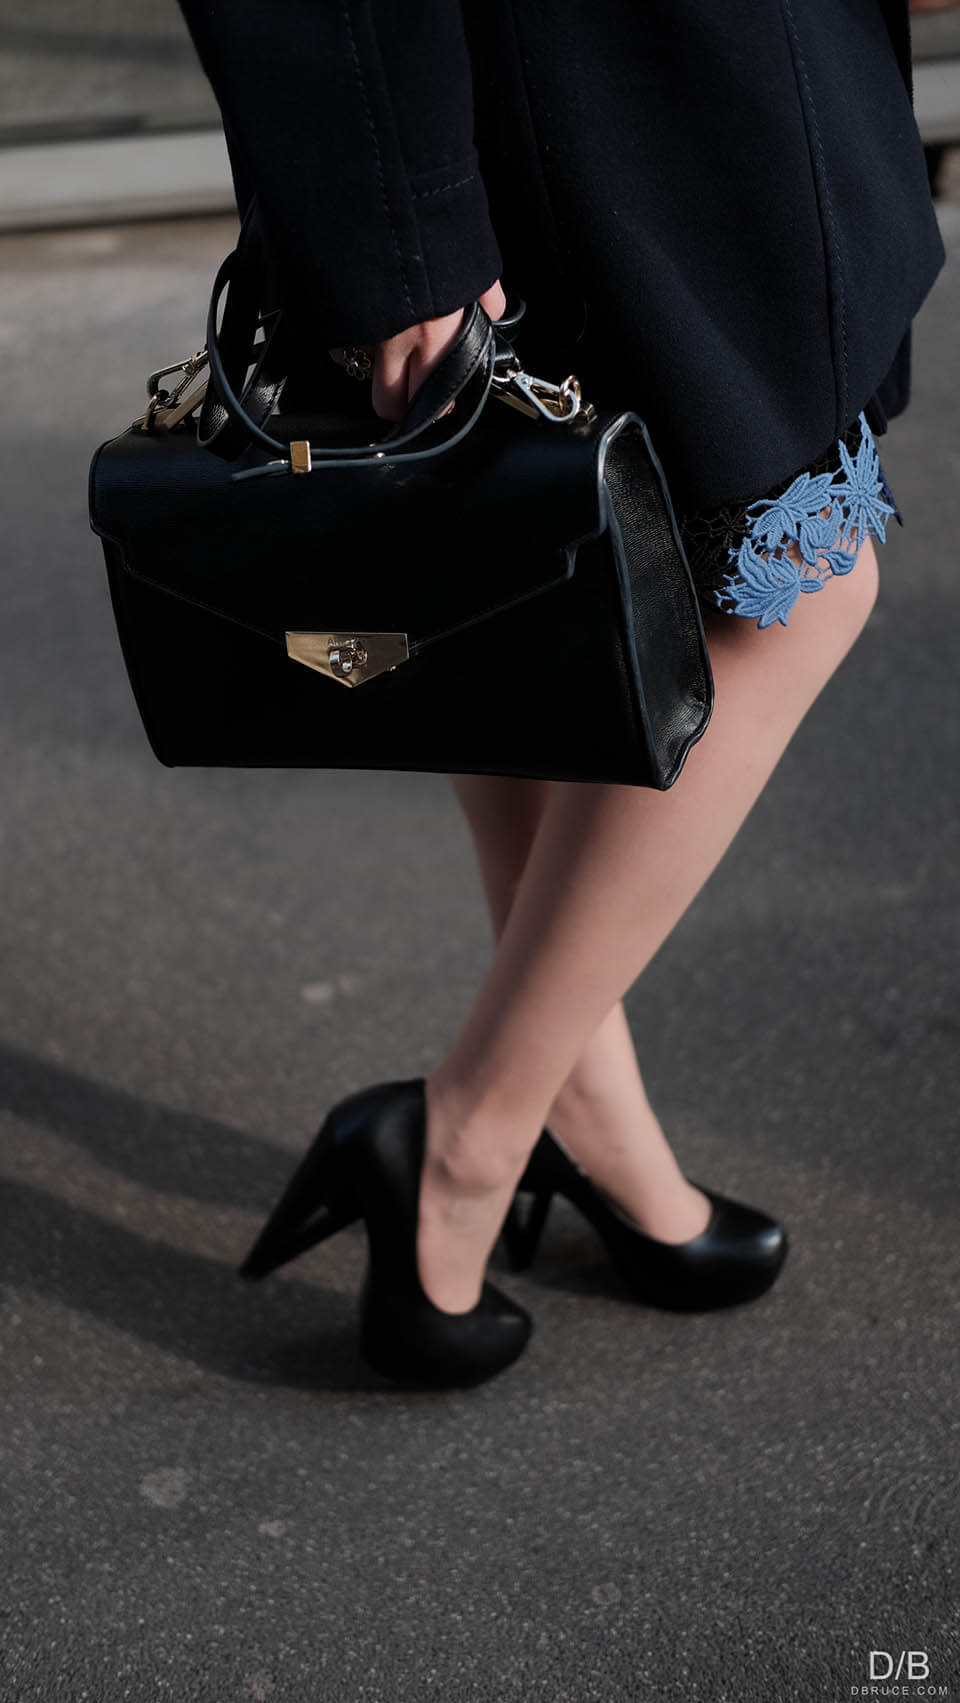 Details: black handbag and shoes